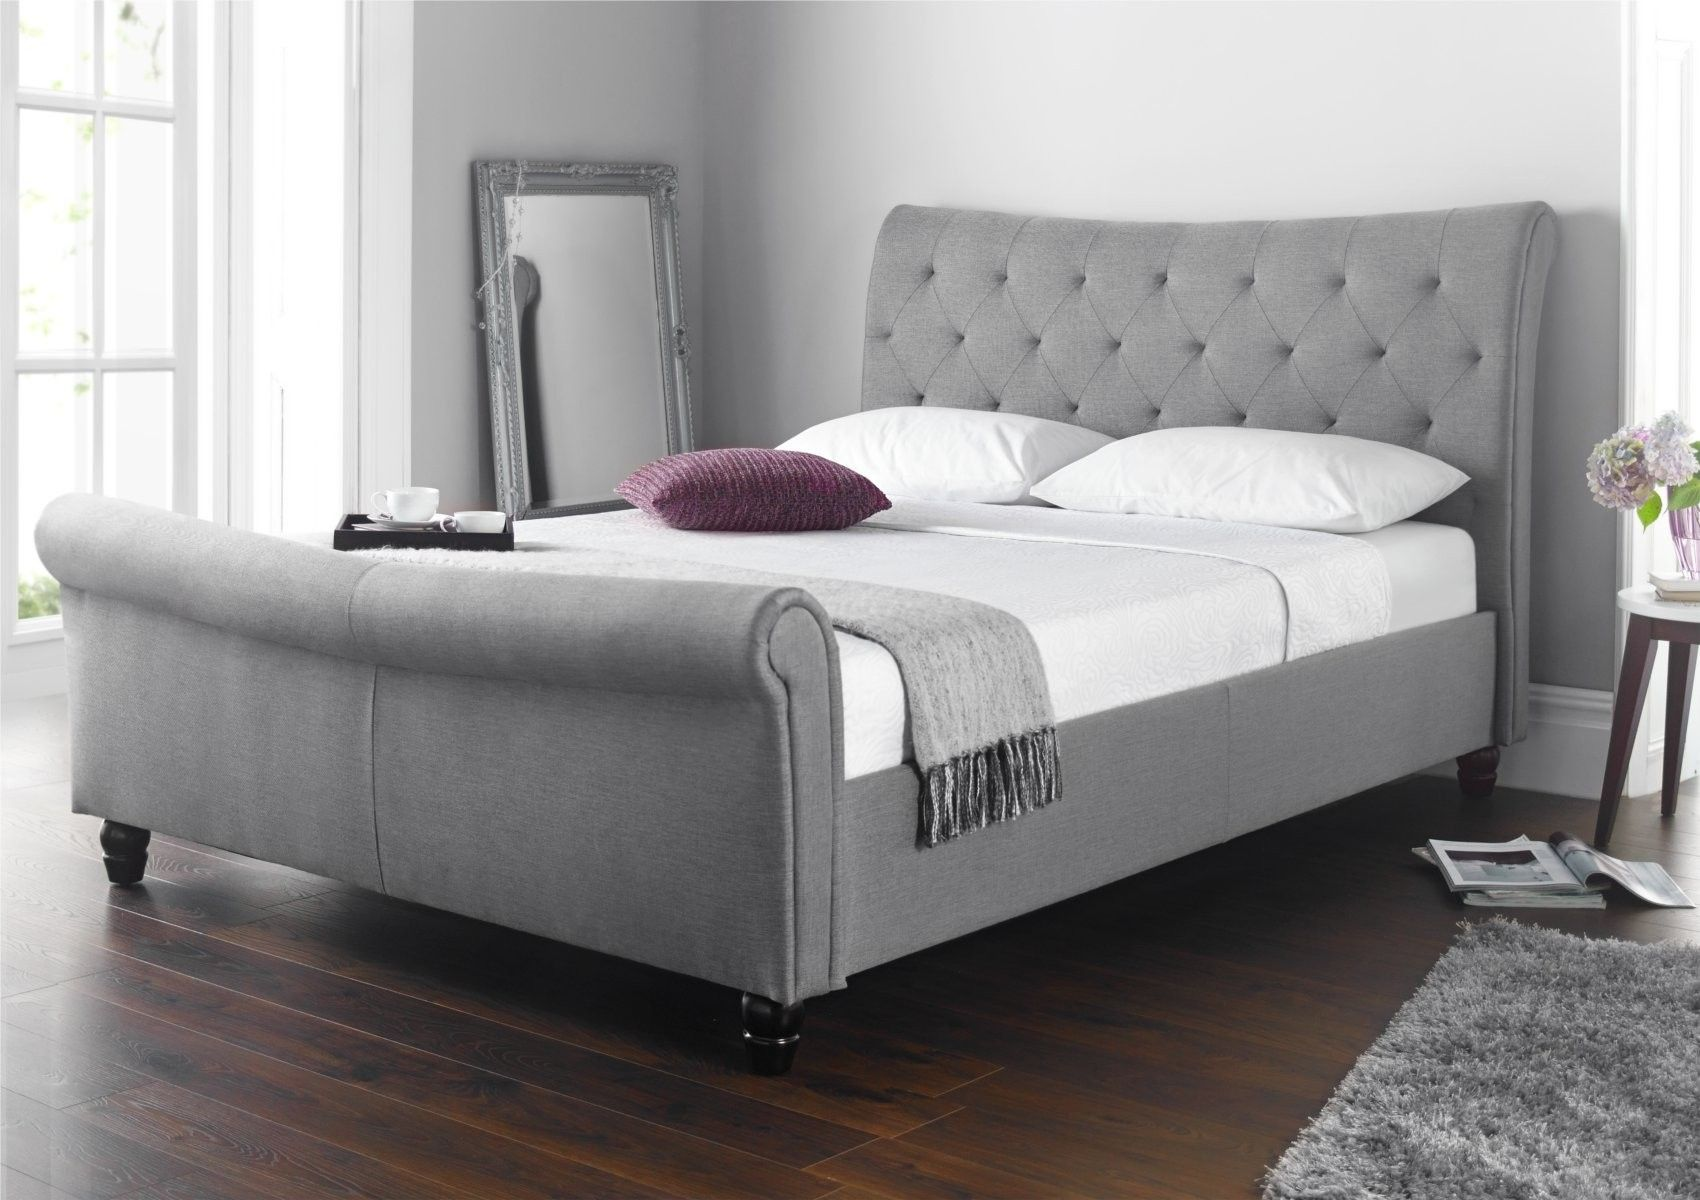 Seville Upholstered Sleigh Bed Grey Upholstered Beds Beds Grey Upholstered Bed Upholstered Beds Upholstered Bed Frame